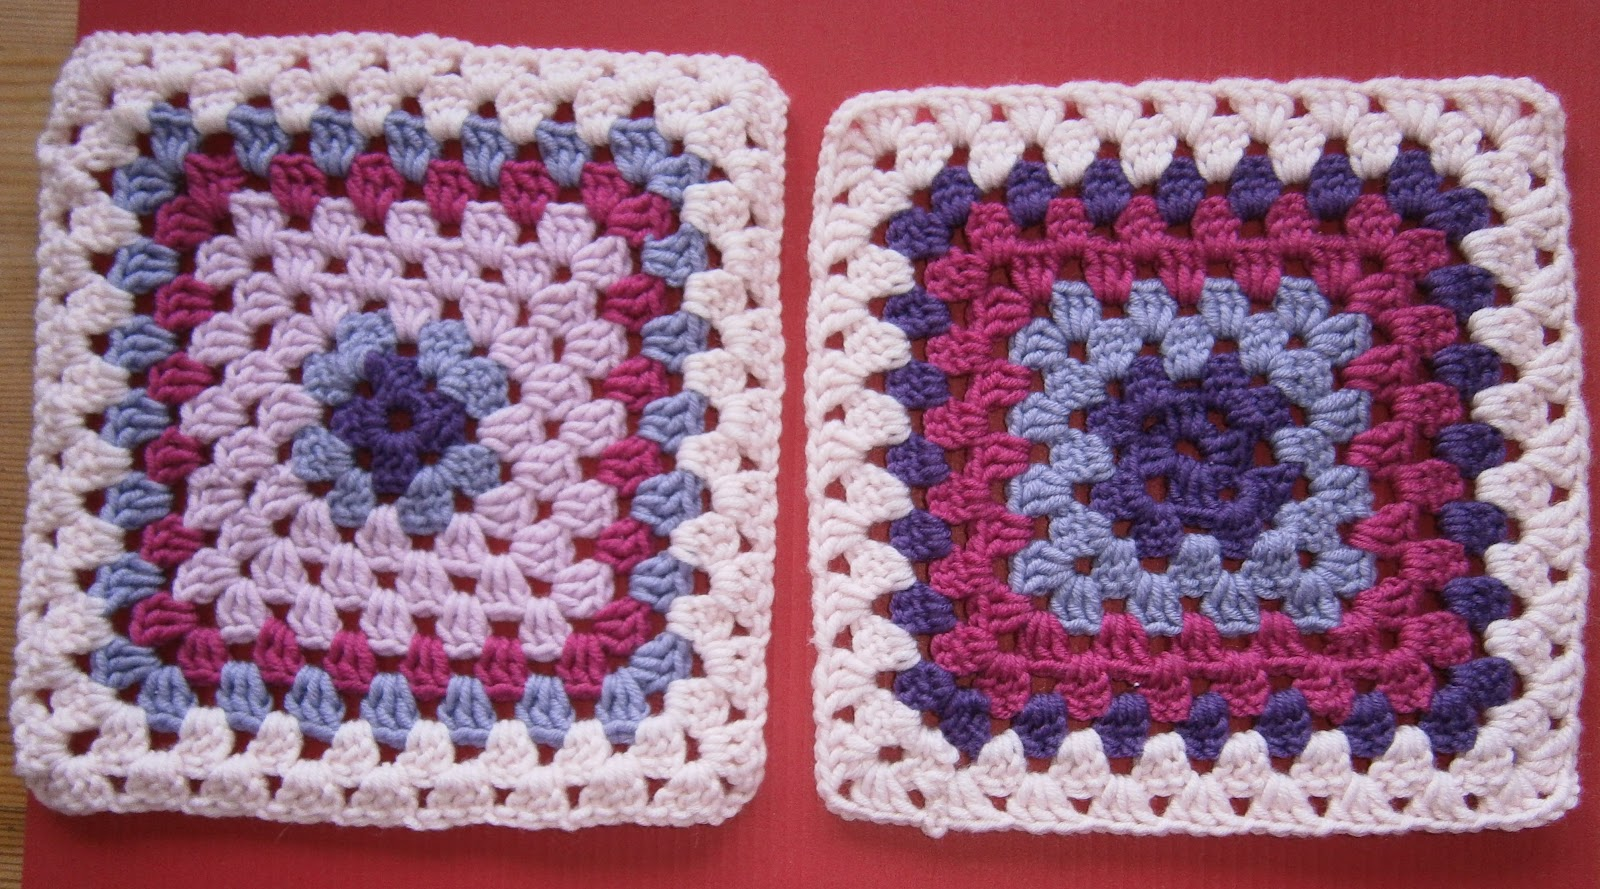 Not only paper: A Granny makes ... Granny Squares!